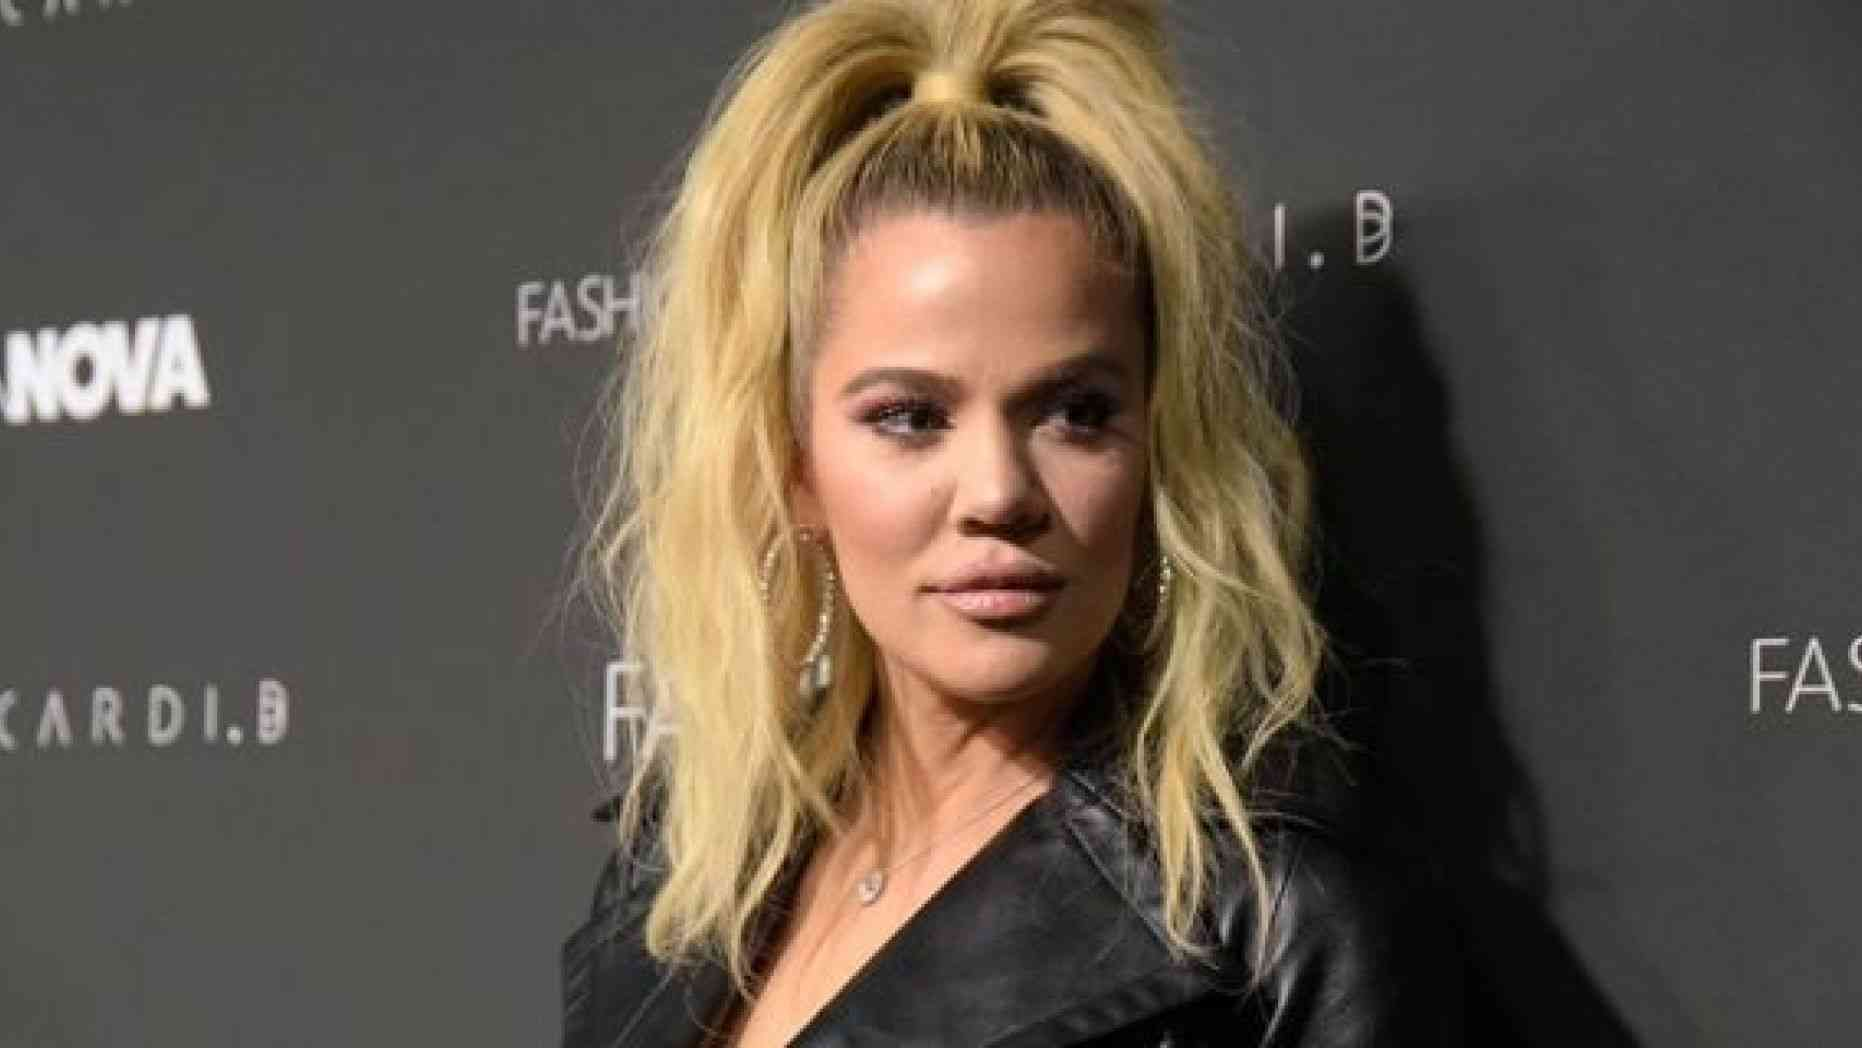 true-thompson-takes-her-first-steps-as-fans-send-encouraging-words-to-khloe-kardashian